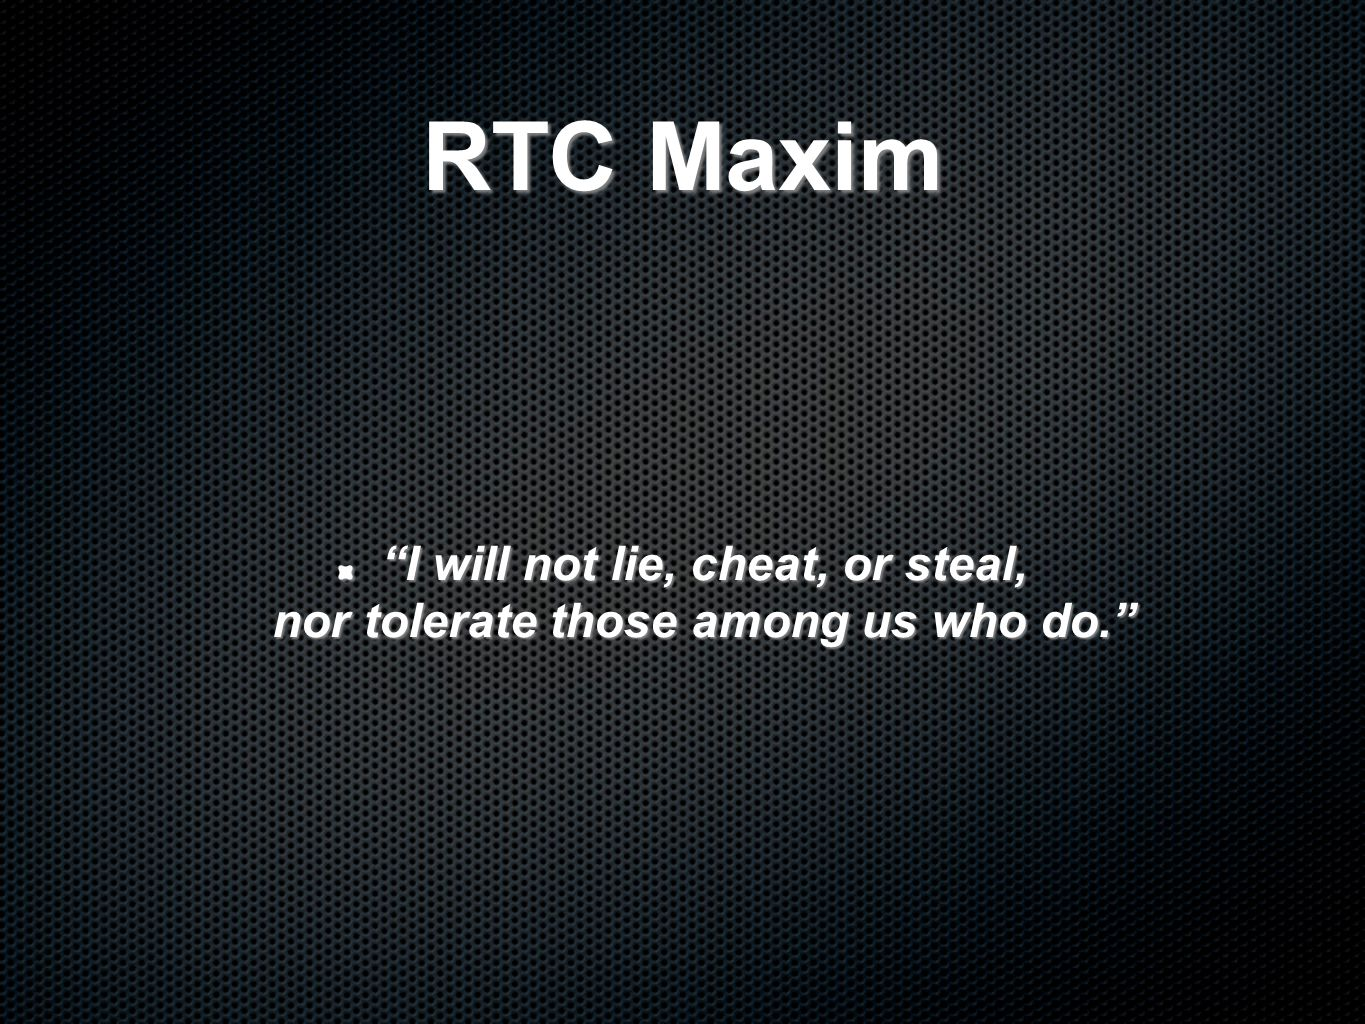 I will not lie, cheat, or steal, nor tolerate those among us who do.